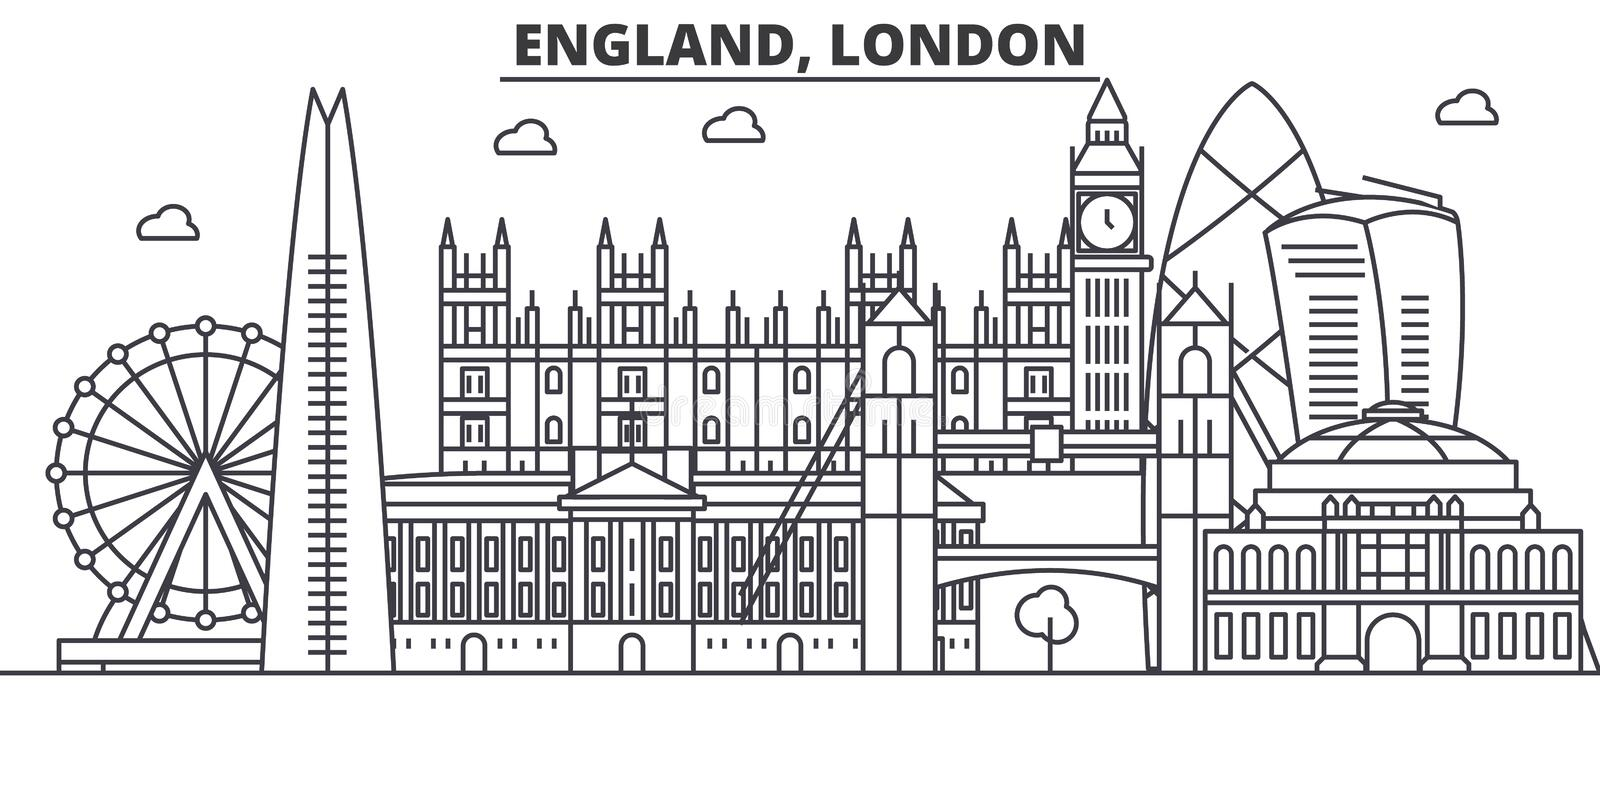 England, London architecture line skyline illustration. Linear vector cityscape with famous landmarks, city sights stock illustration